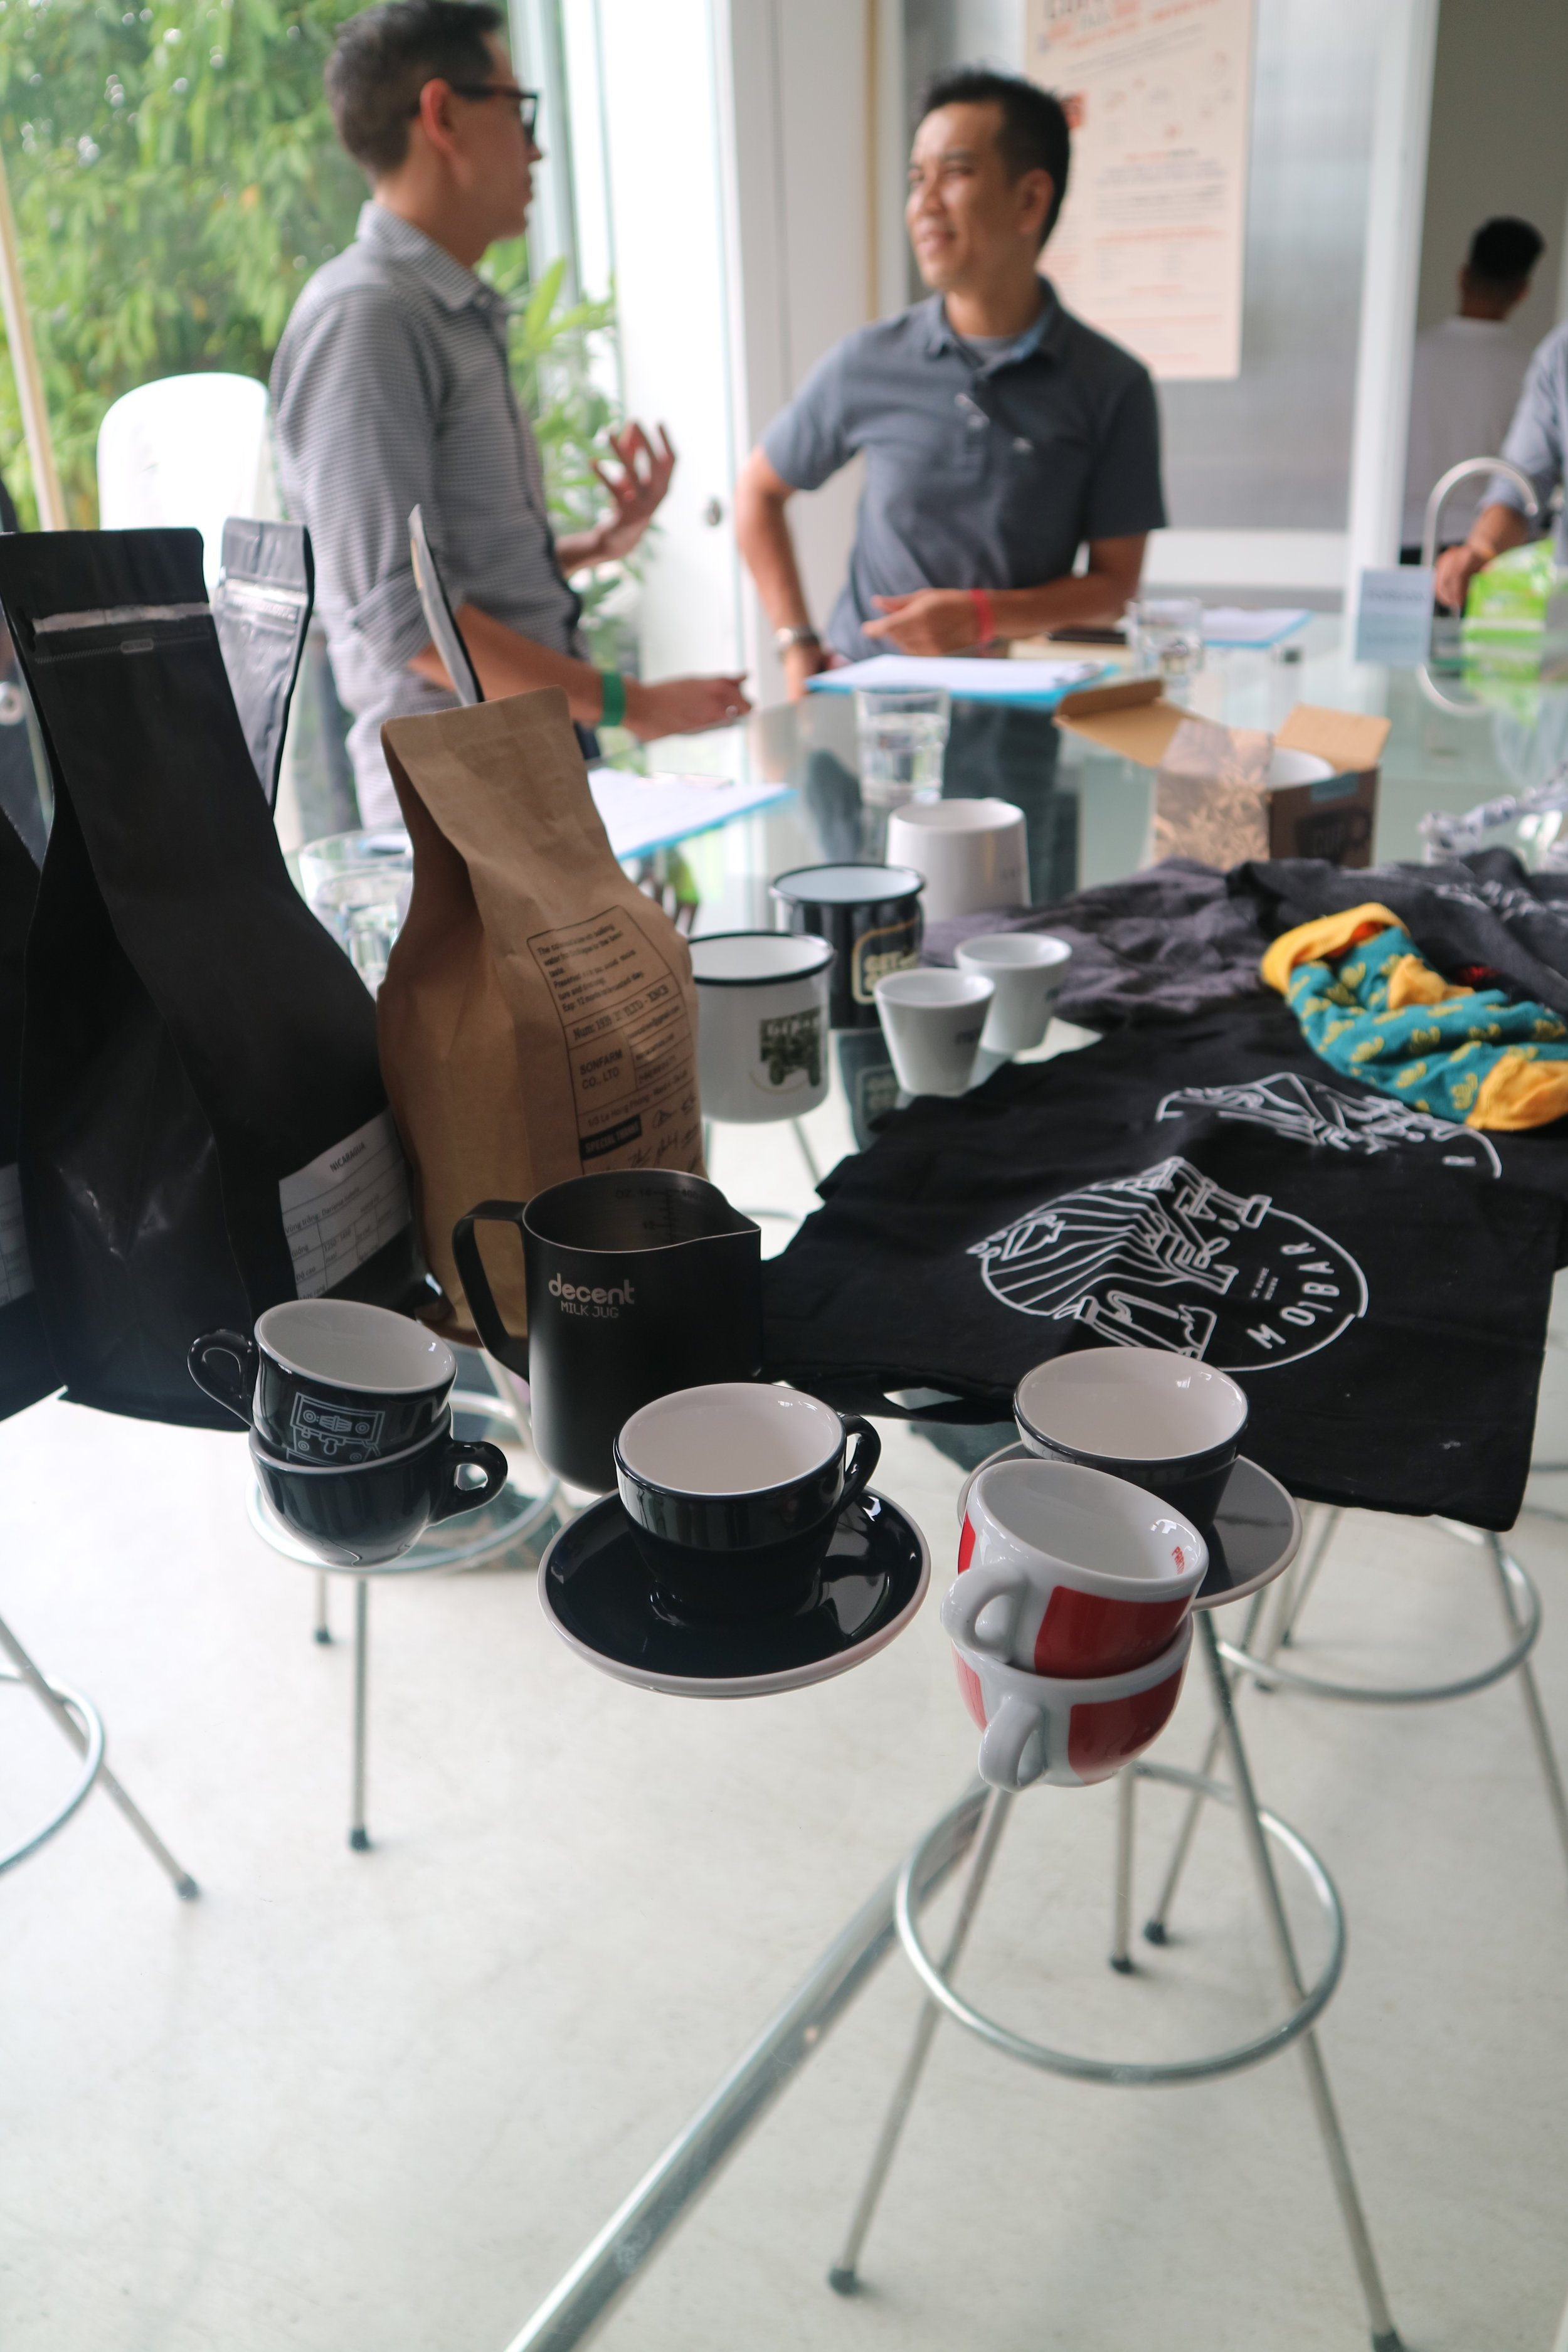 Me, Hung (Bosgaurus), and a table full of swag and prizes, including 1 kilogram of Panama Hartman Geisha.